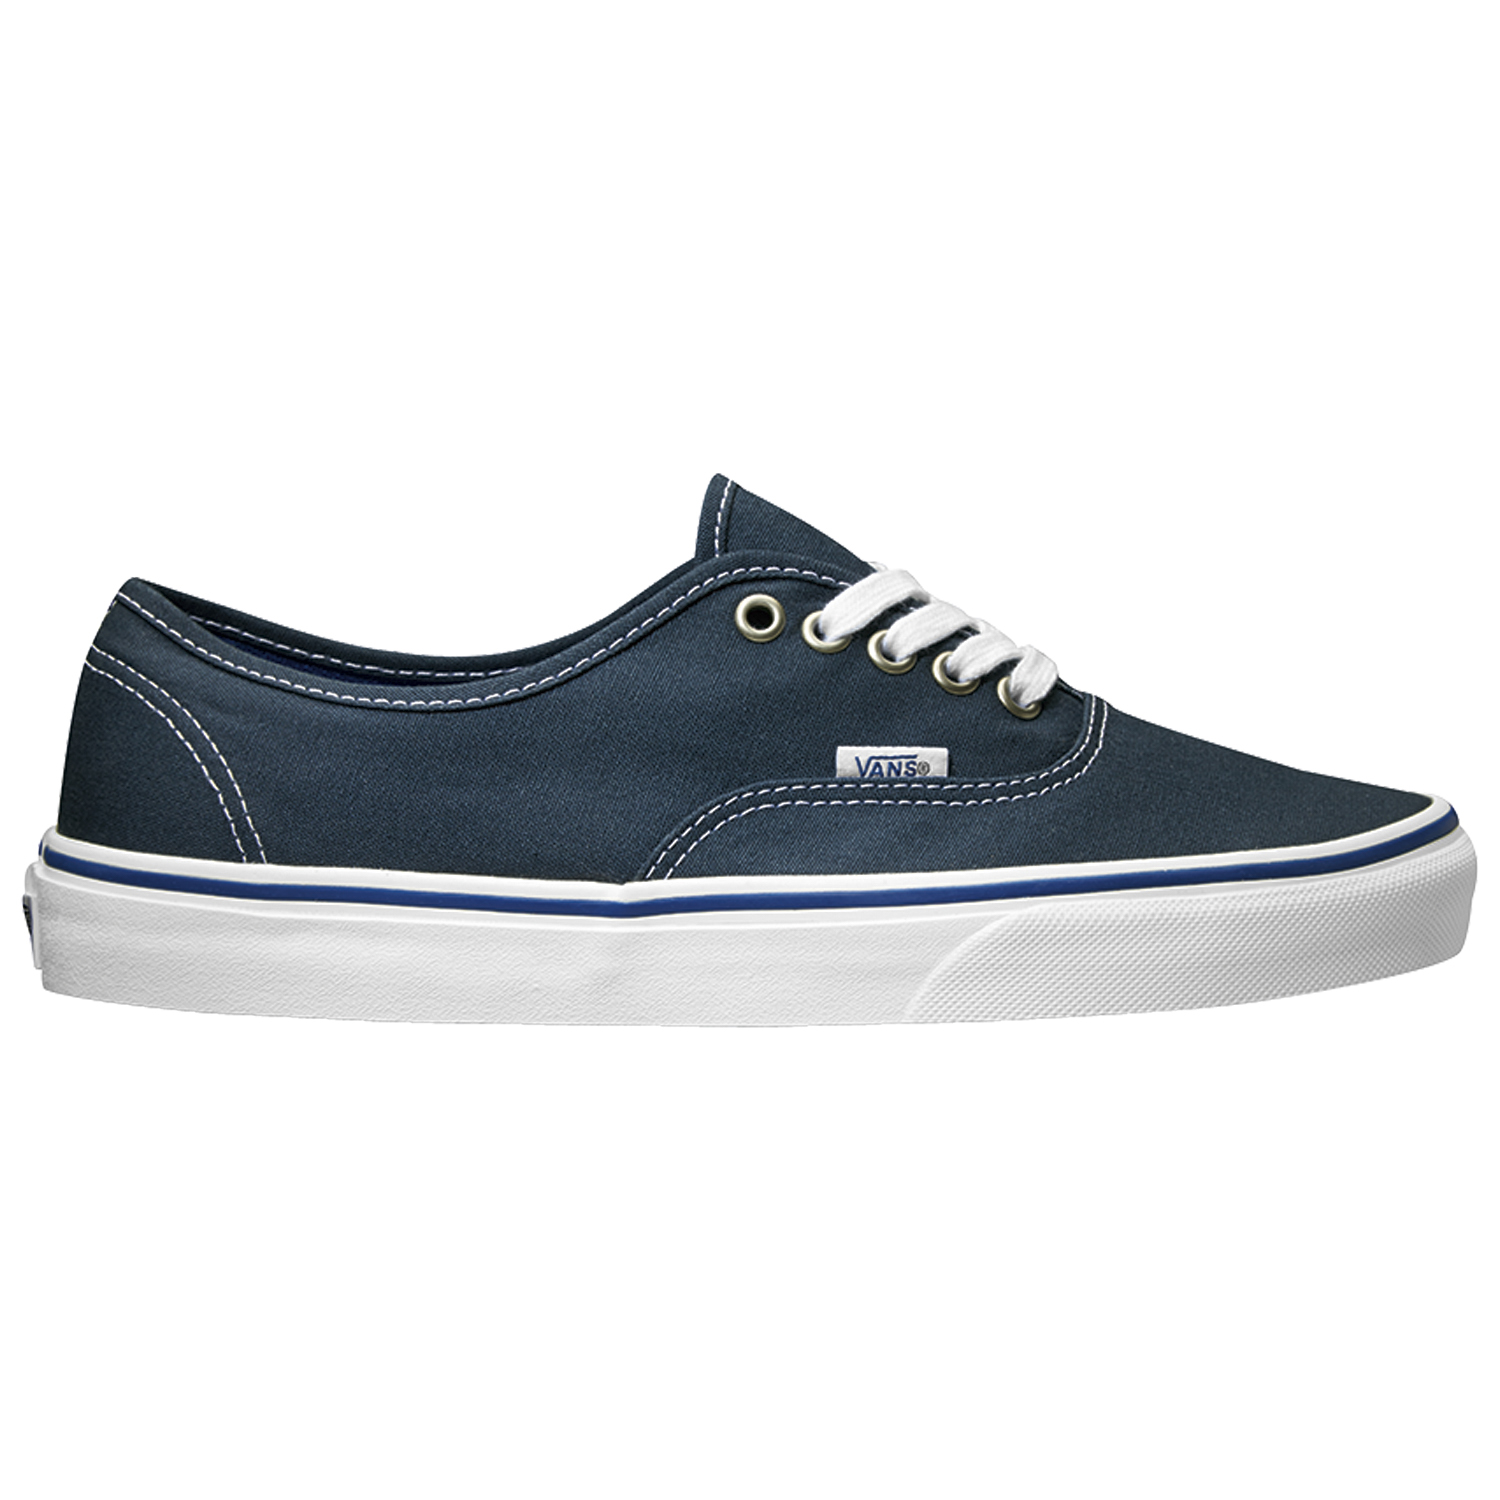 vans-authentic-midnight-navy-true-white-109-90